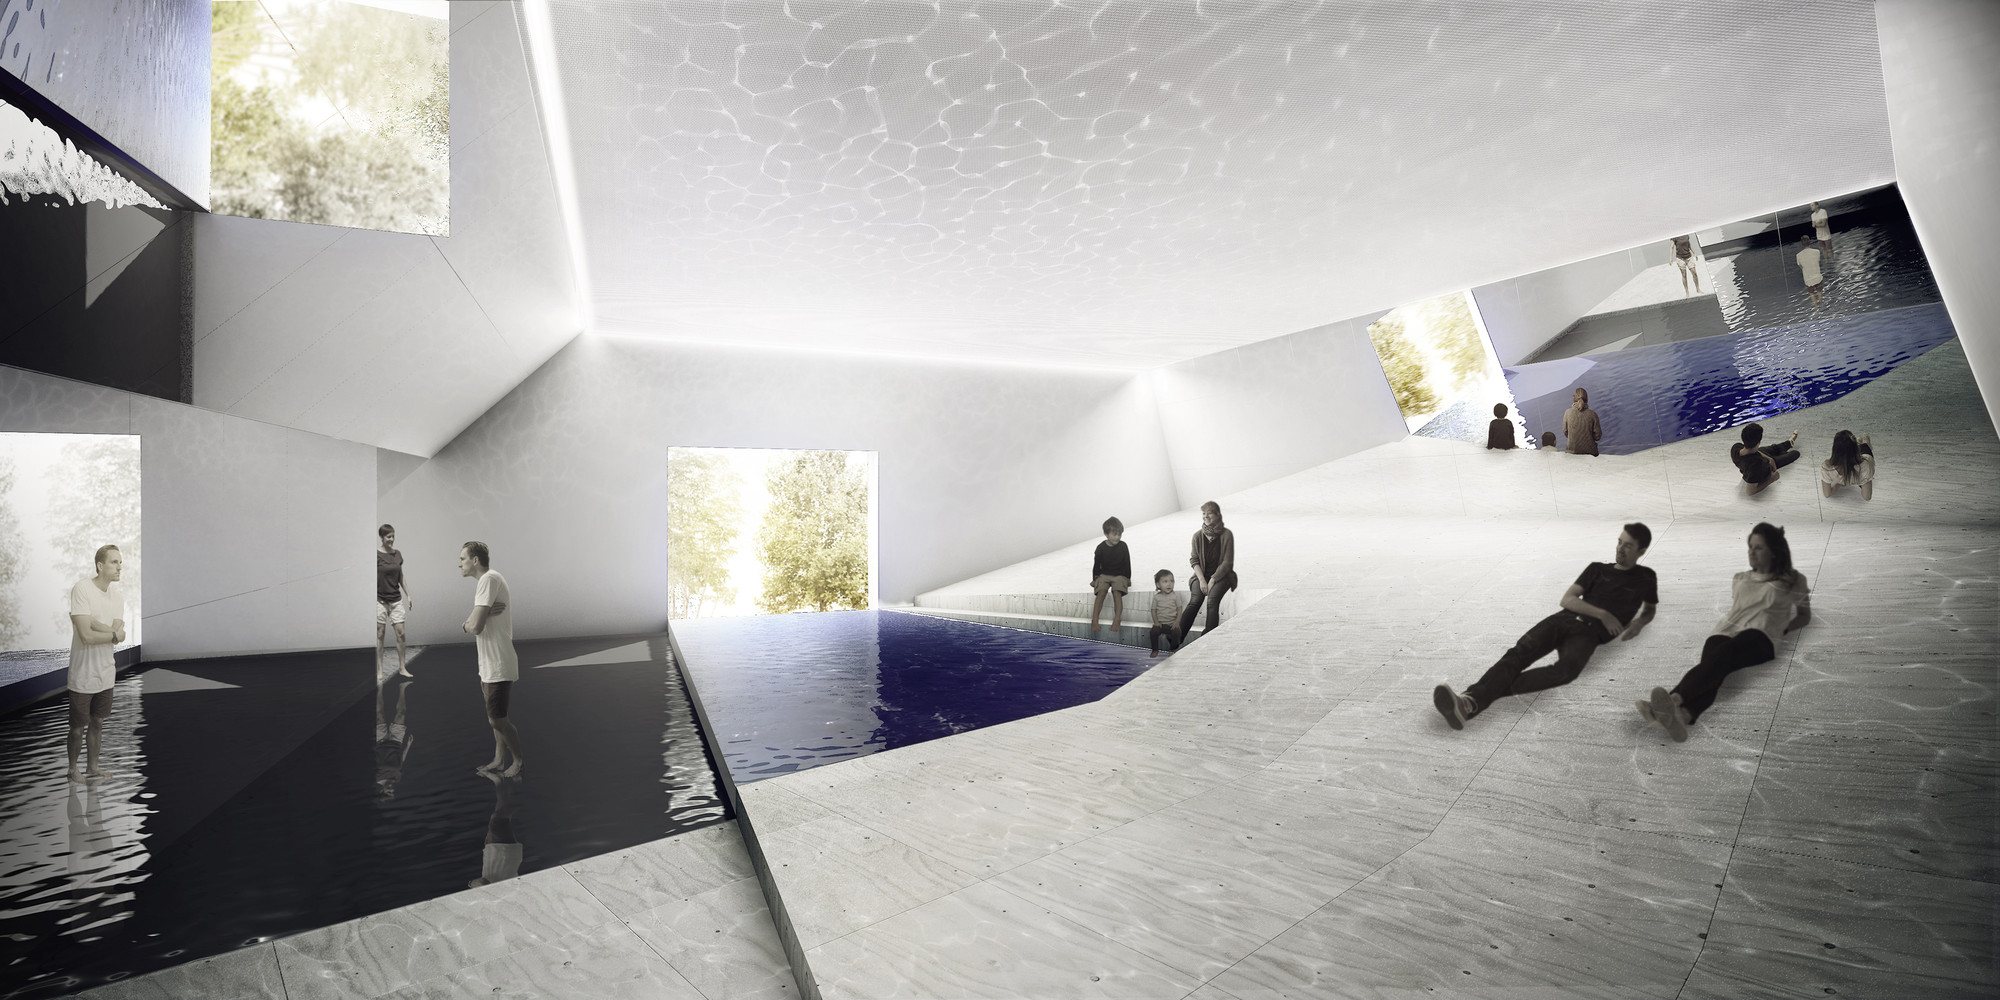 Venice Biennale 2016: 5 Proposals Shortlisted for Australian Pavilion,  The Pool / Aileen Sage and Michelle Tabet  . Image Courtesy of Australian Institute of Architects